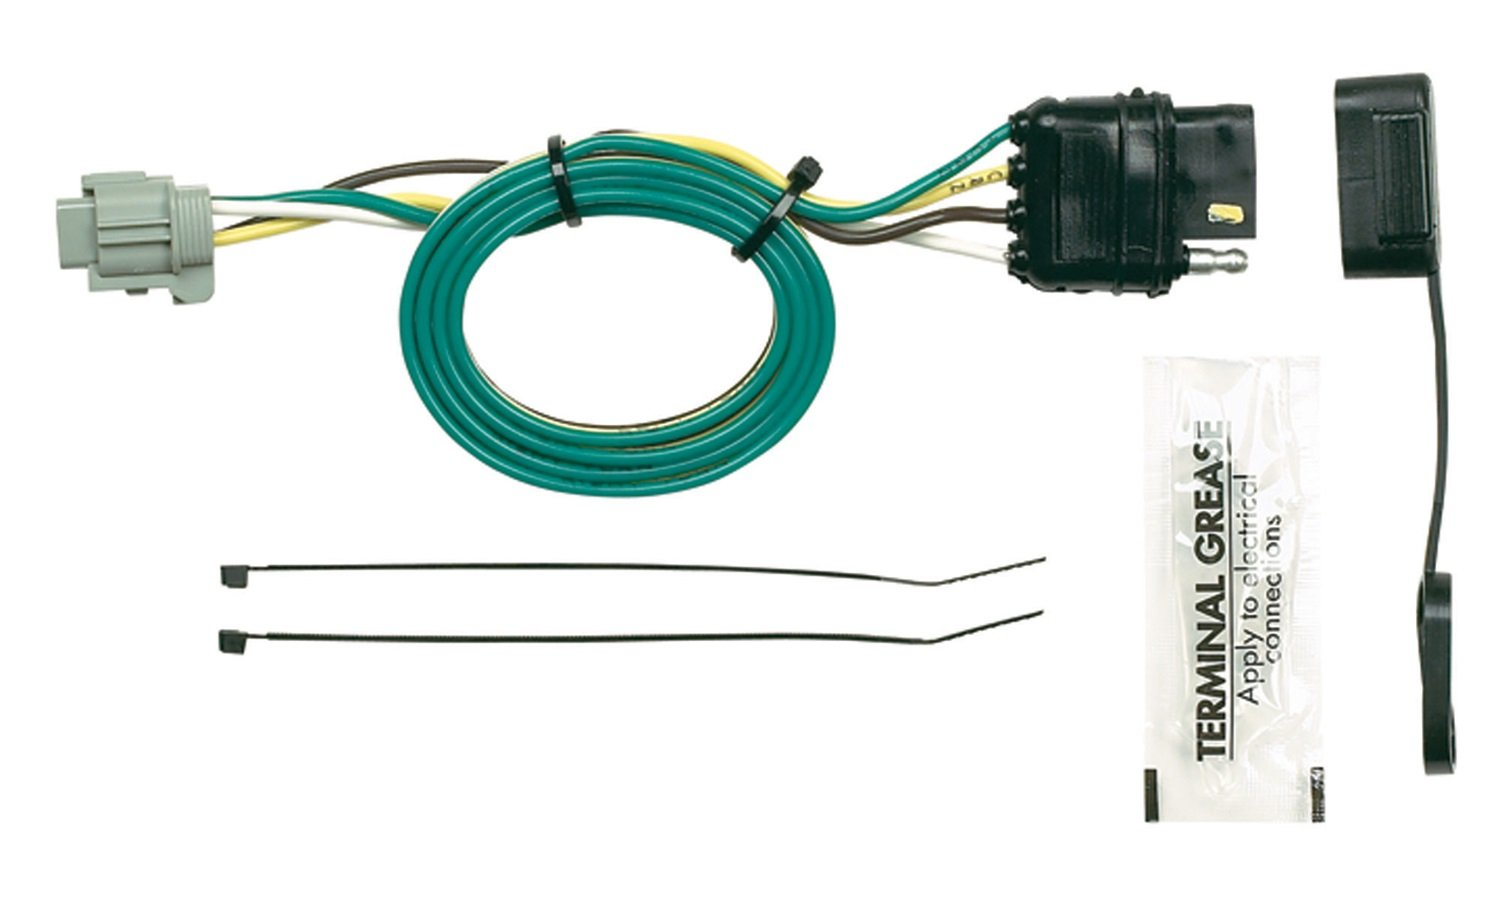 Amazon.com: Hopkins 43595 Plug-In Simple Vehicle Wiring Kit: Automotive